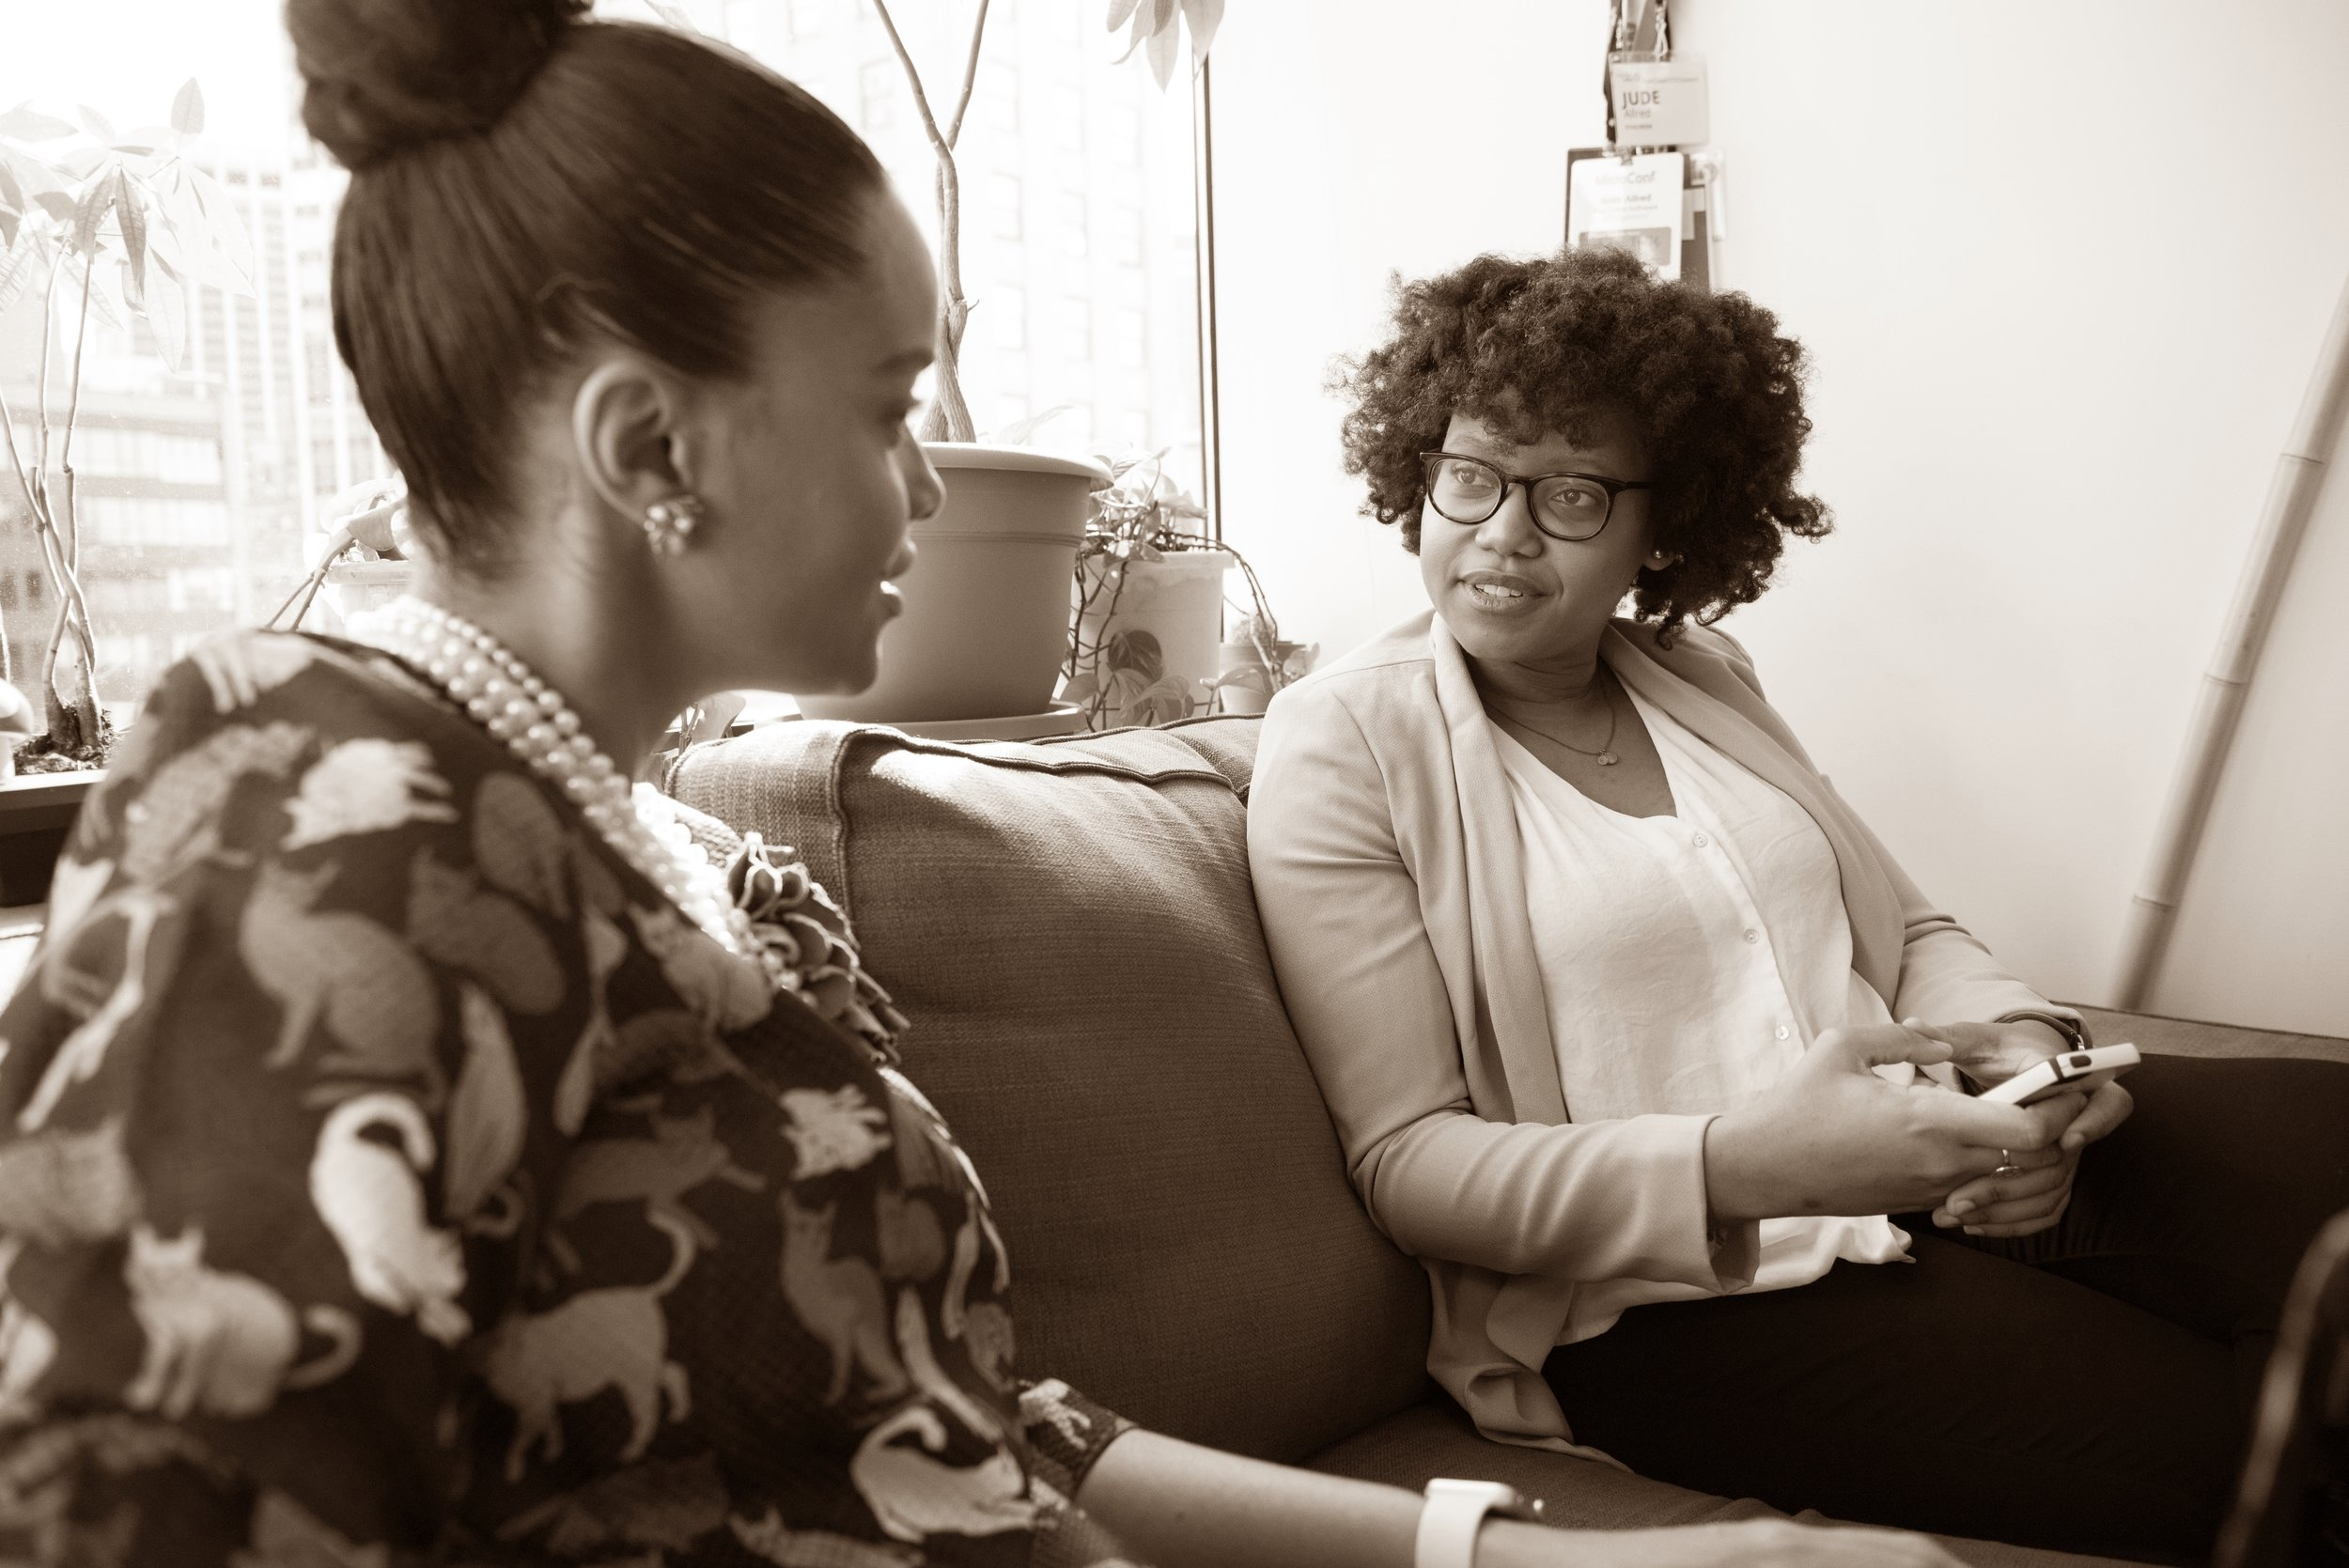 General & Couples Counselling - Find out more about other counselling services we have to offer.